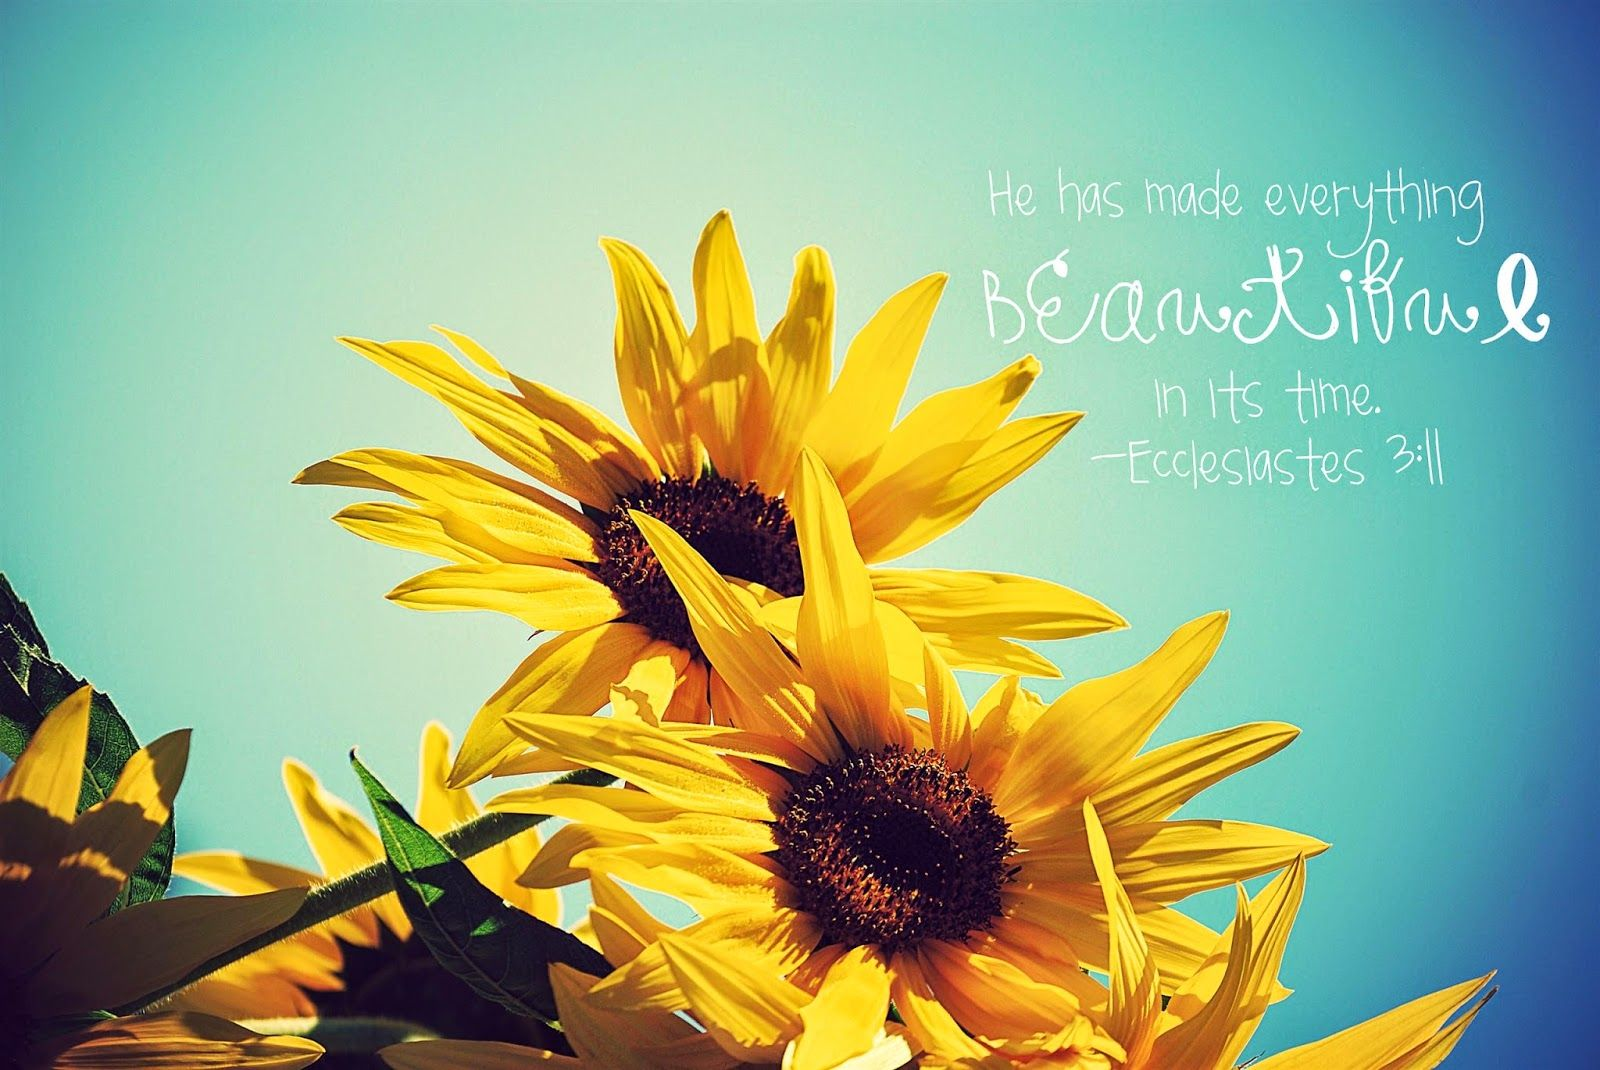 Free Christian Desktop Wallpapers Mysunwillshine Com Sunflower Wallpaper Tumblr Backgrounds Facebook Cover